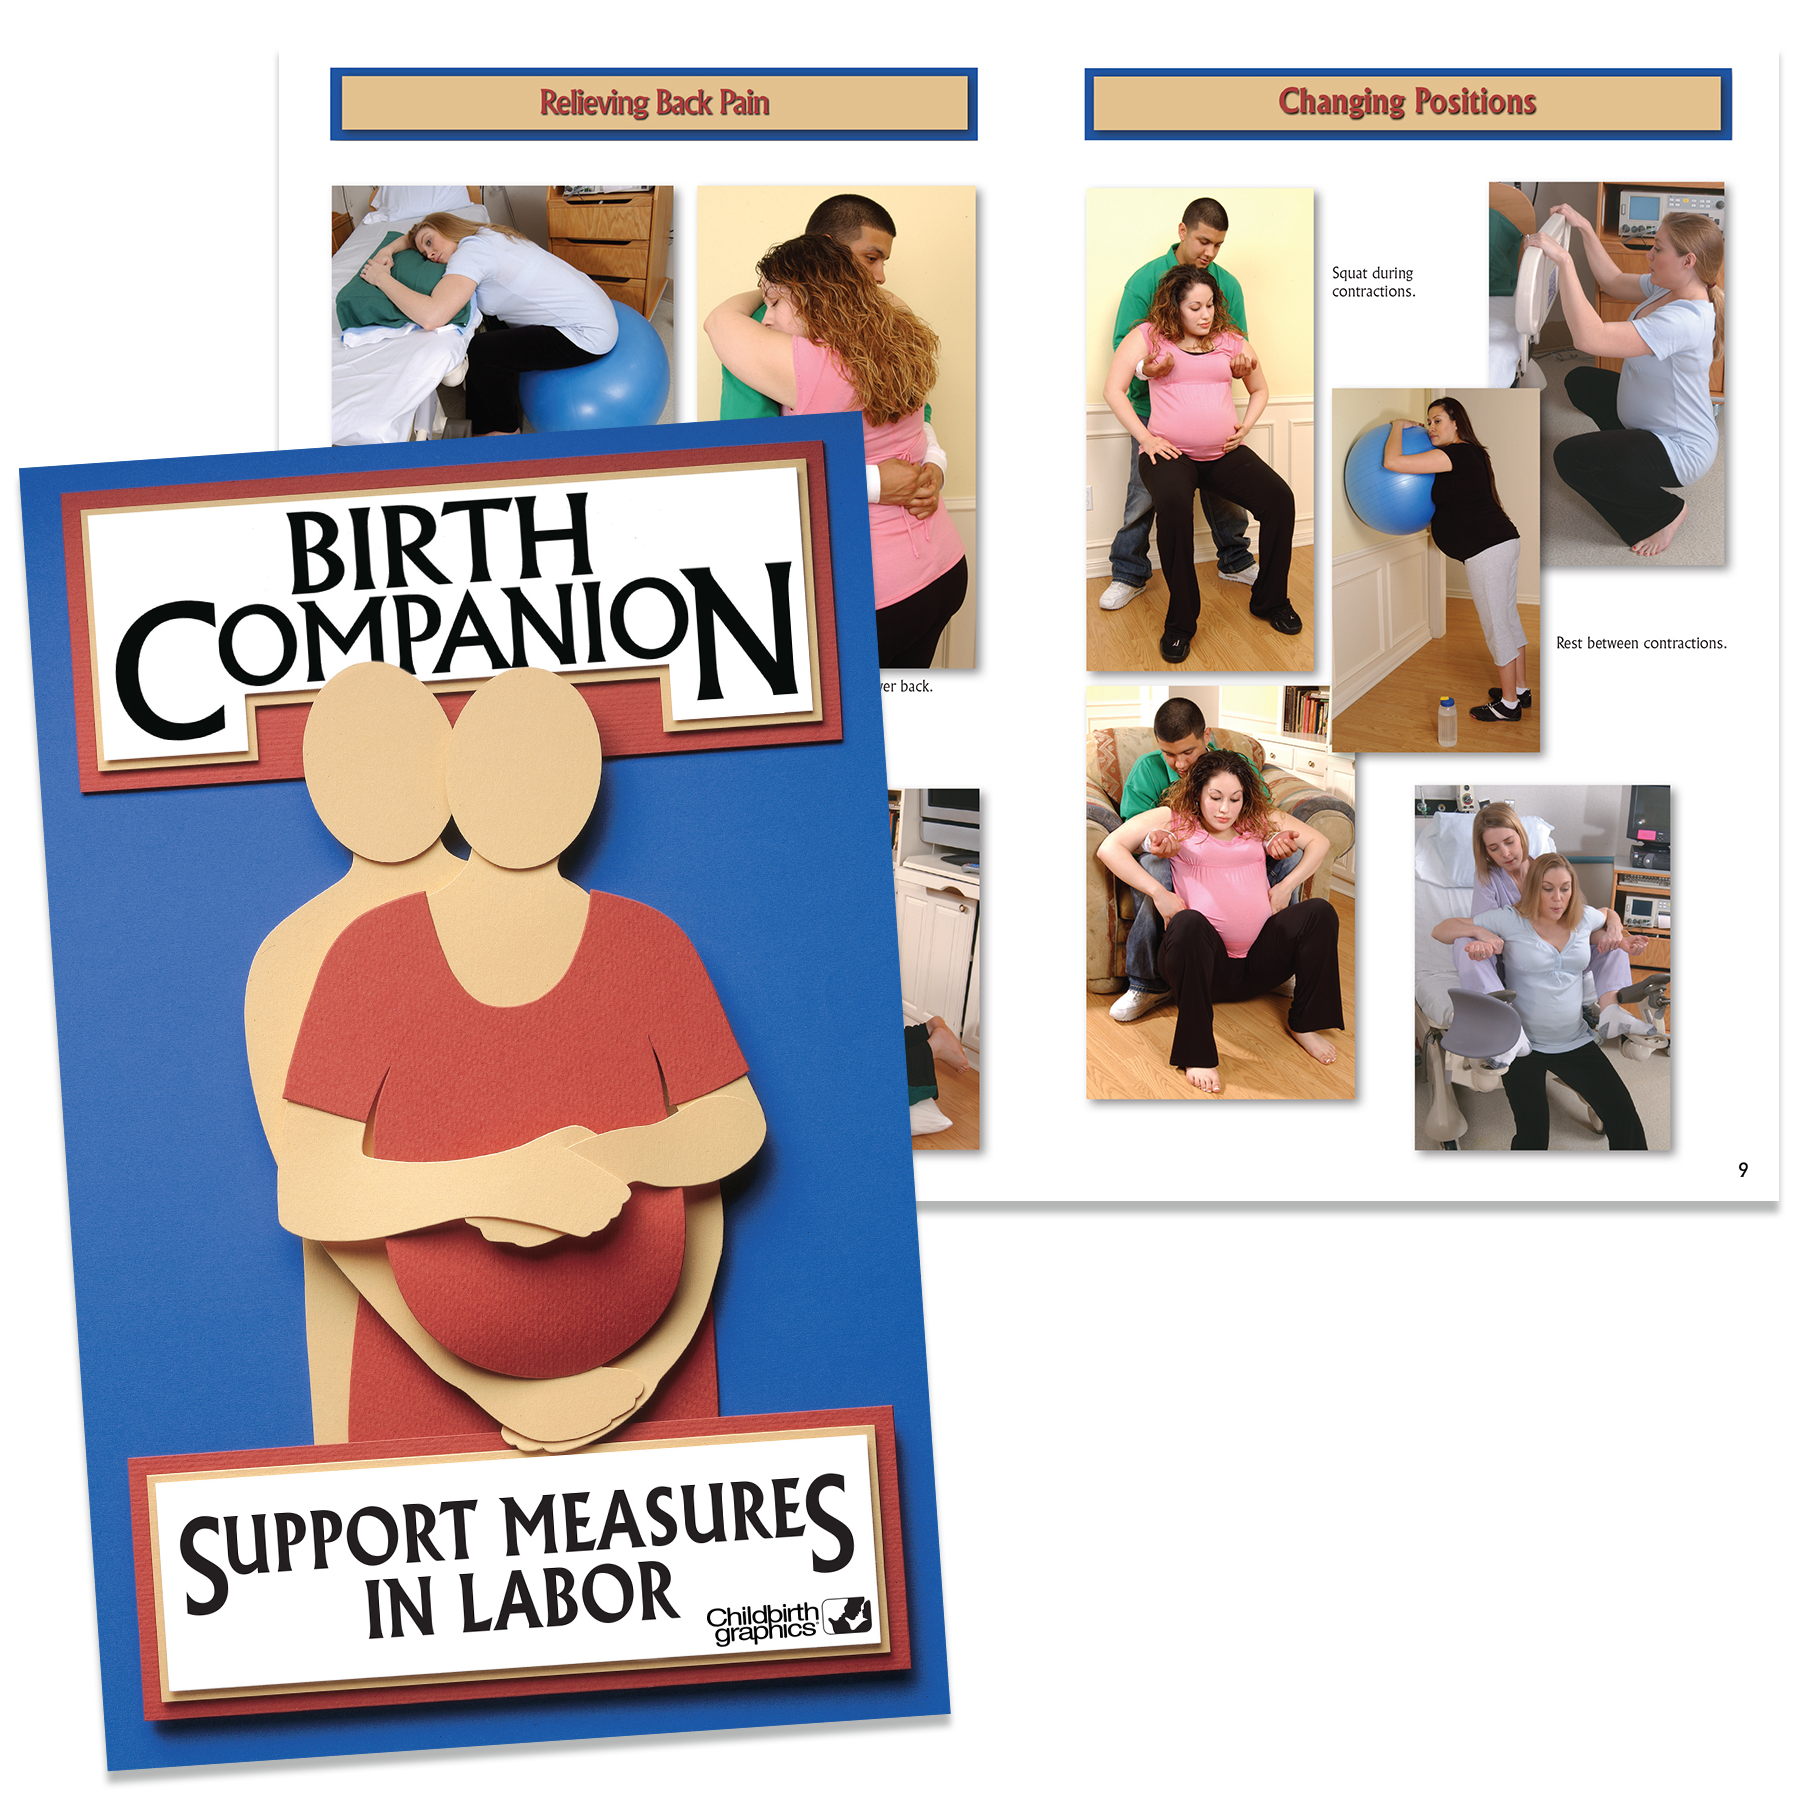 Birth Companion Booklet for childbirth education from Childbirth Graphics